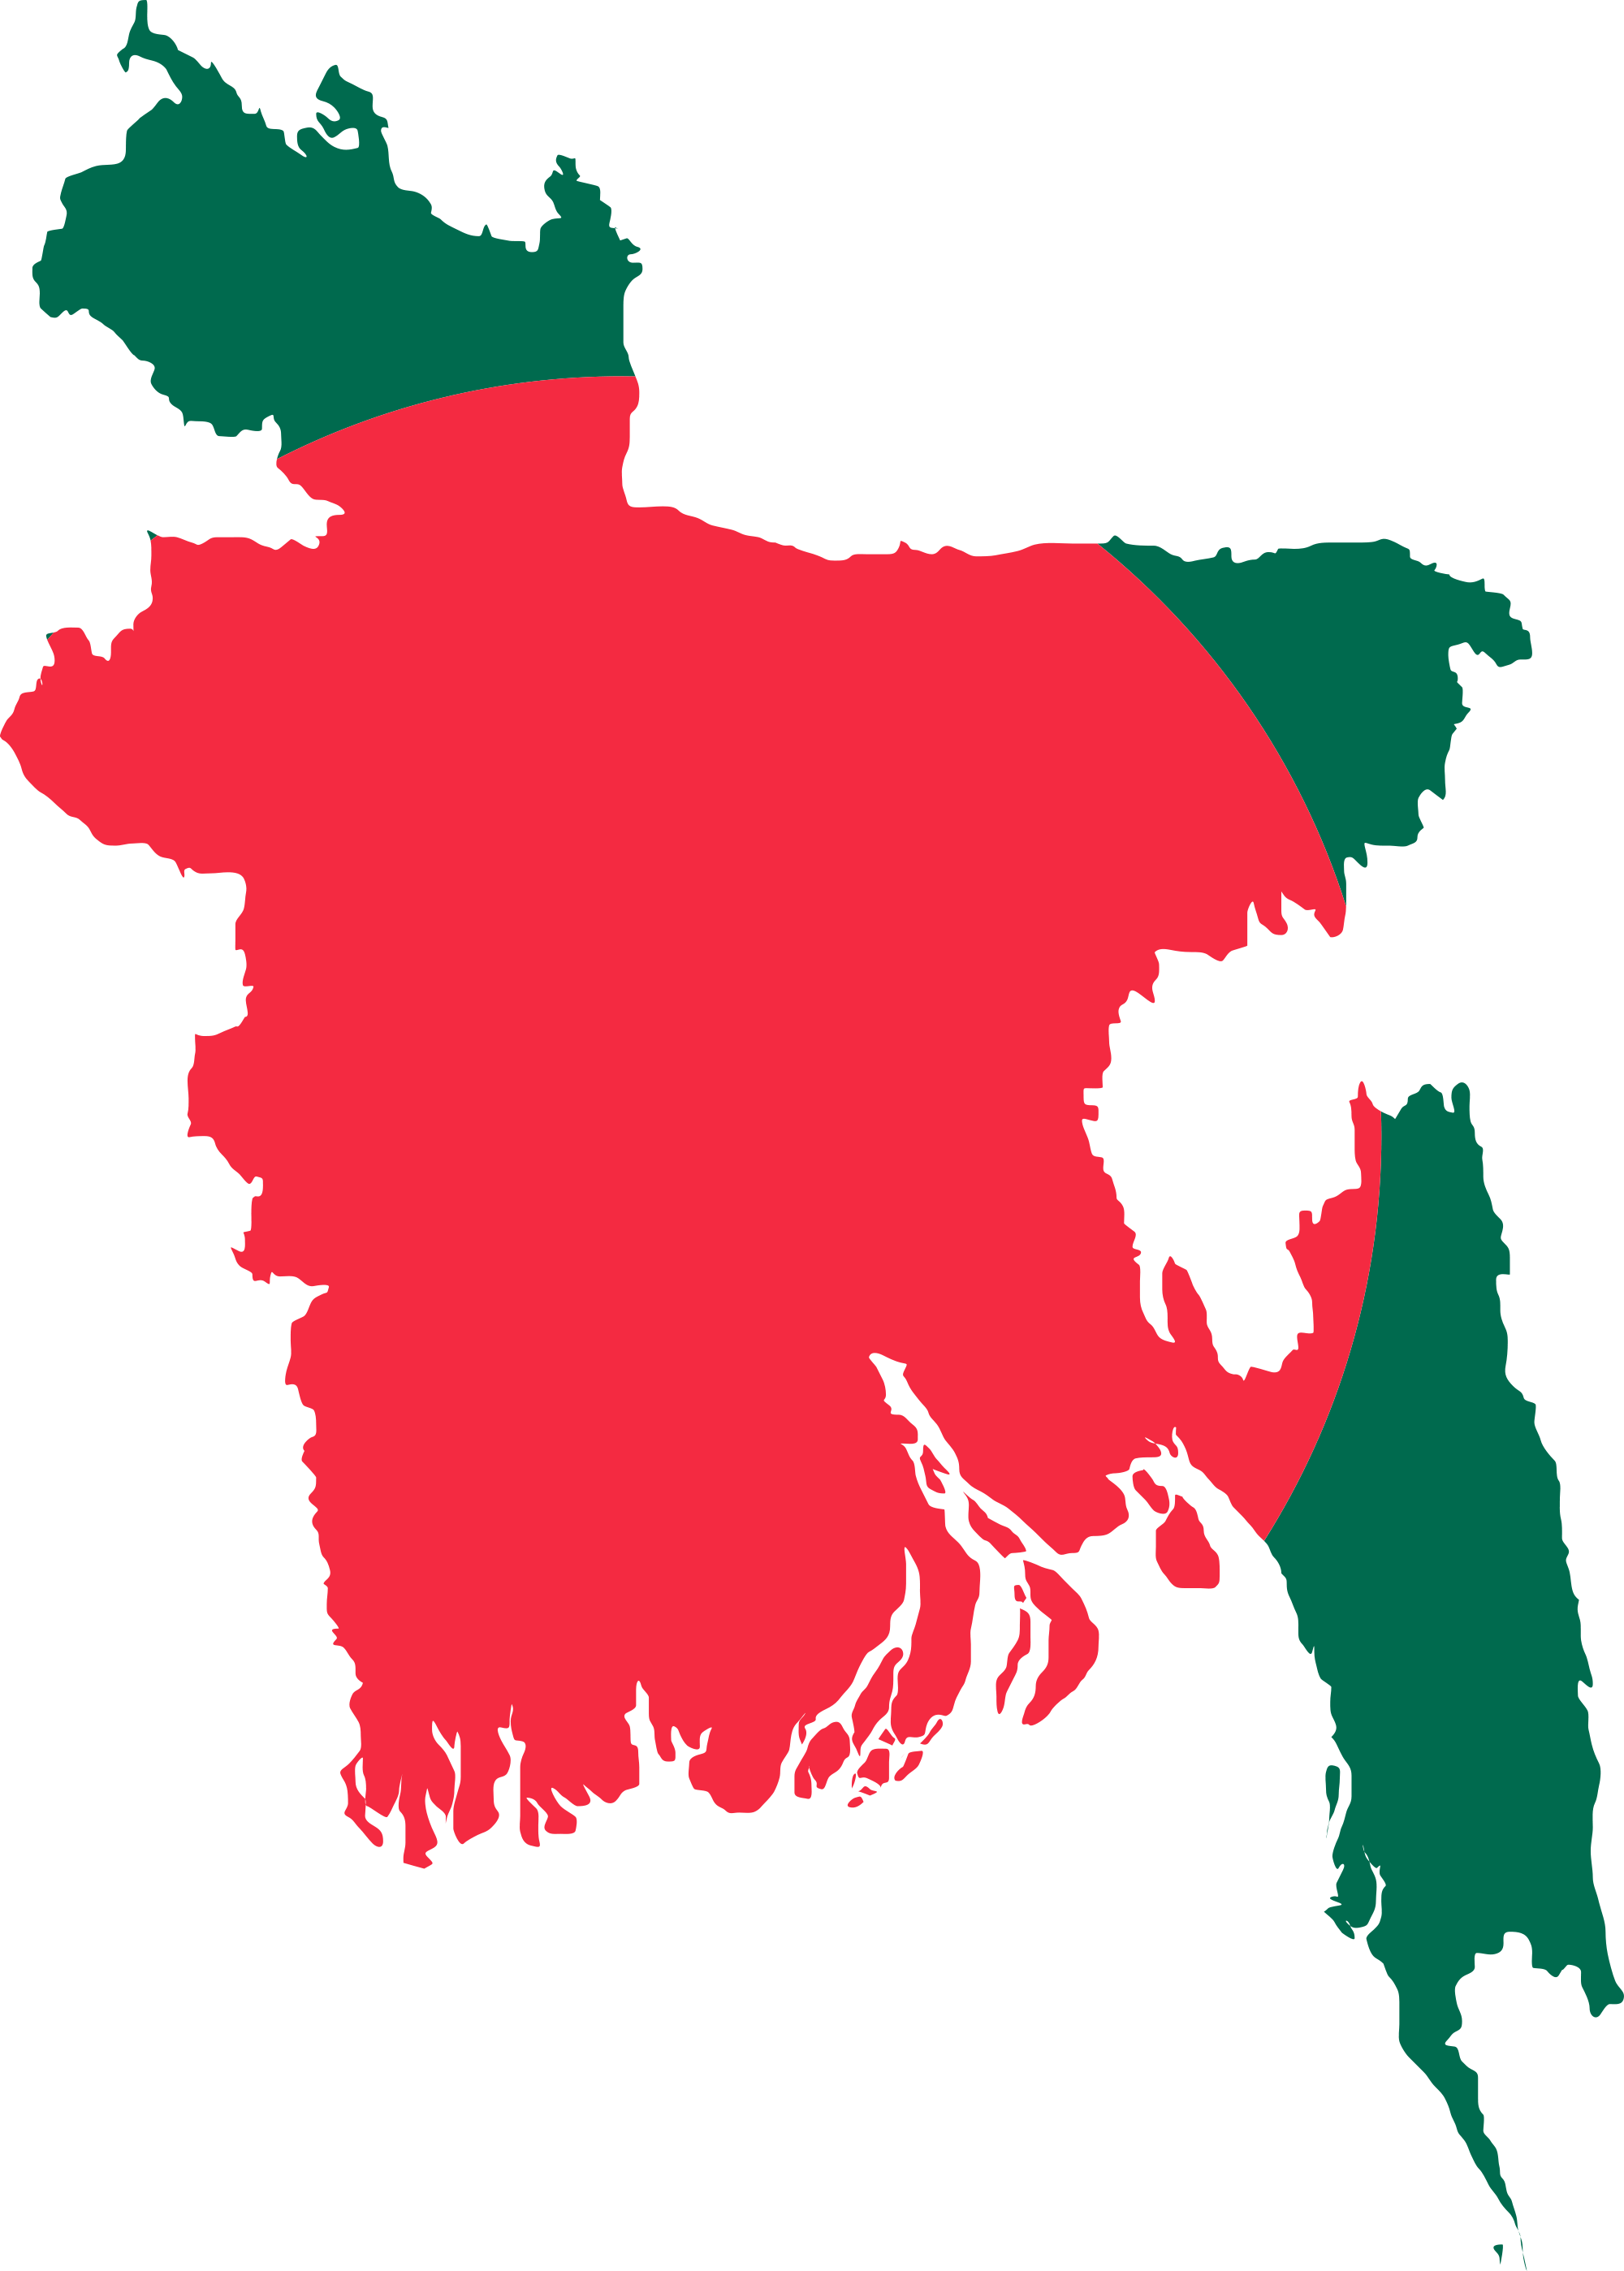 Bangladesh flag png. Image map of constructed